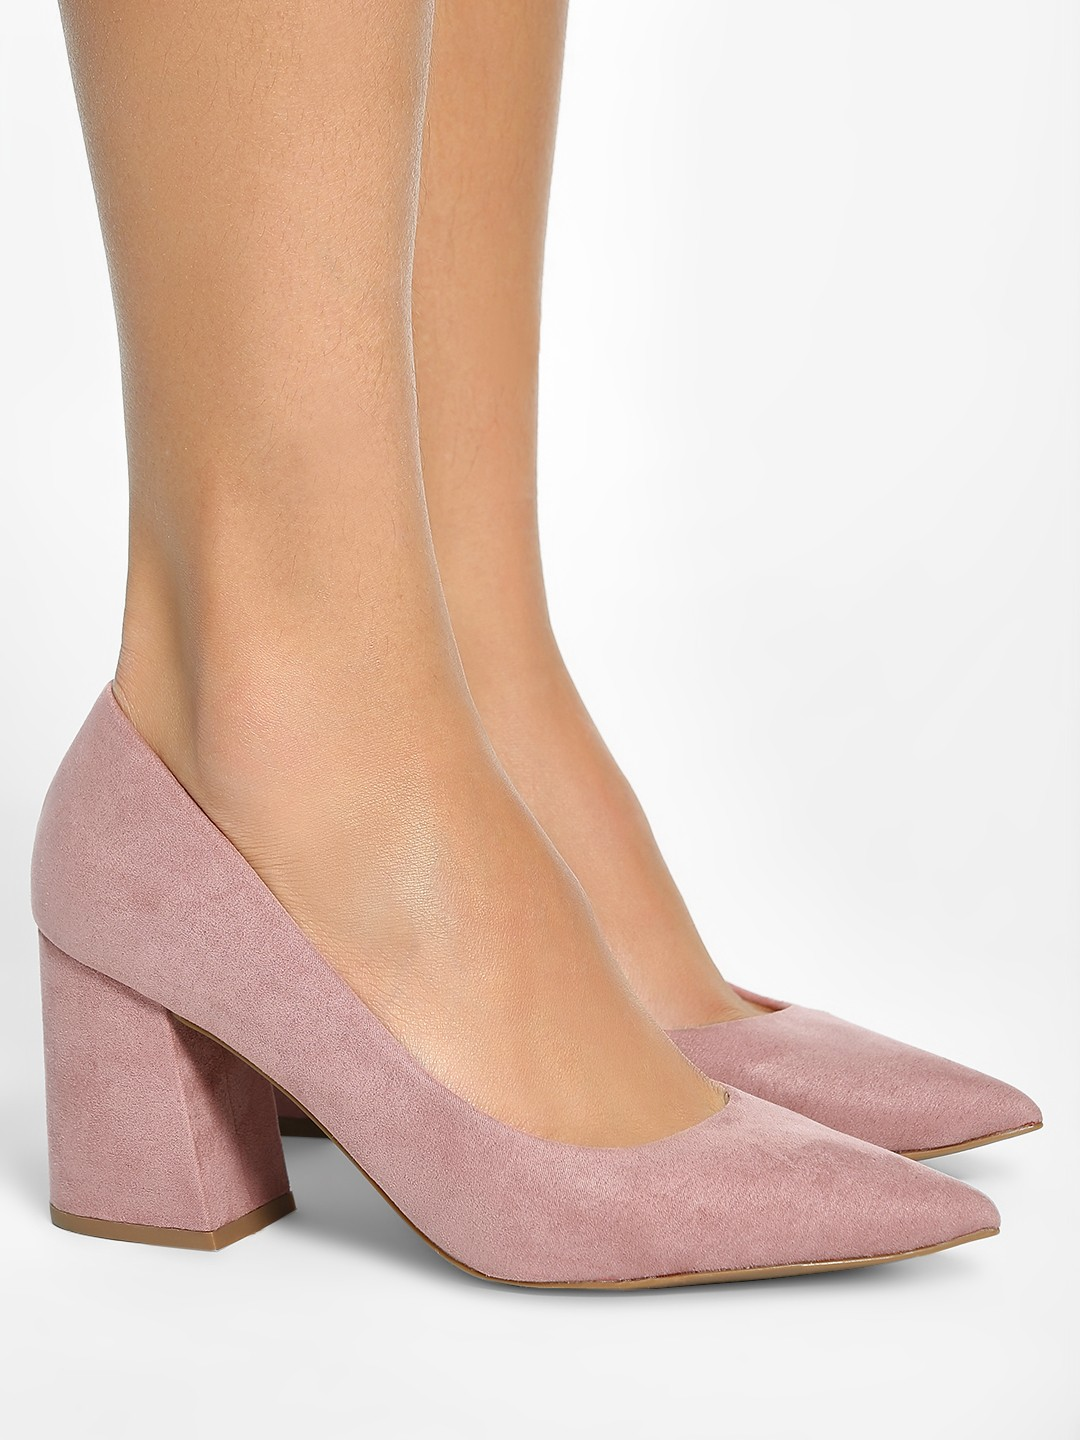 New Look Pink Suede Flared Heel Pumps 1